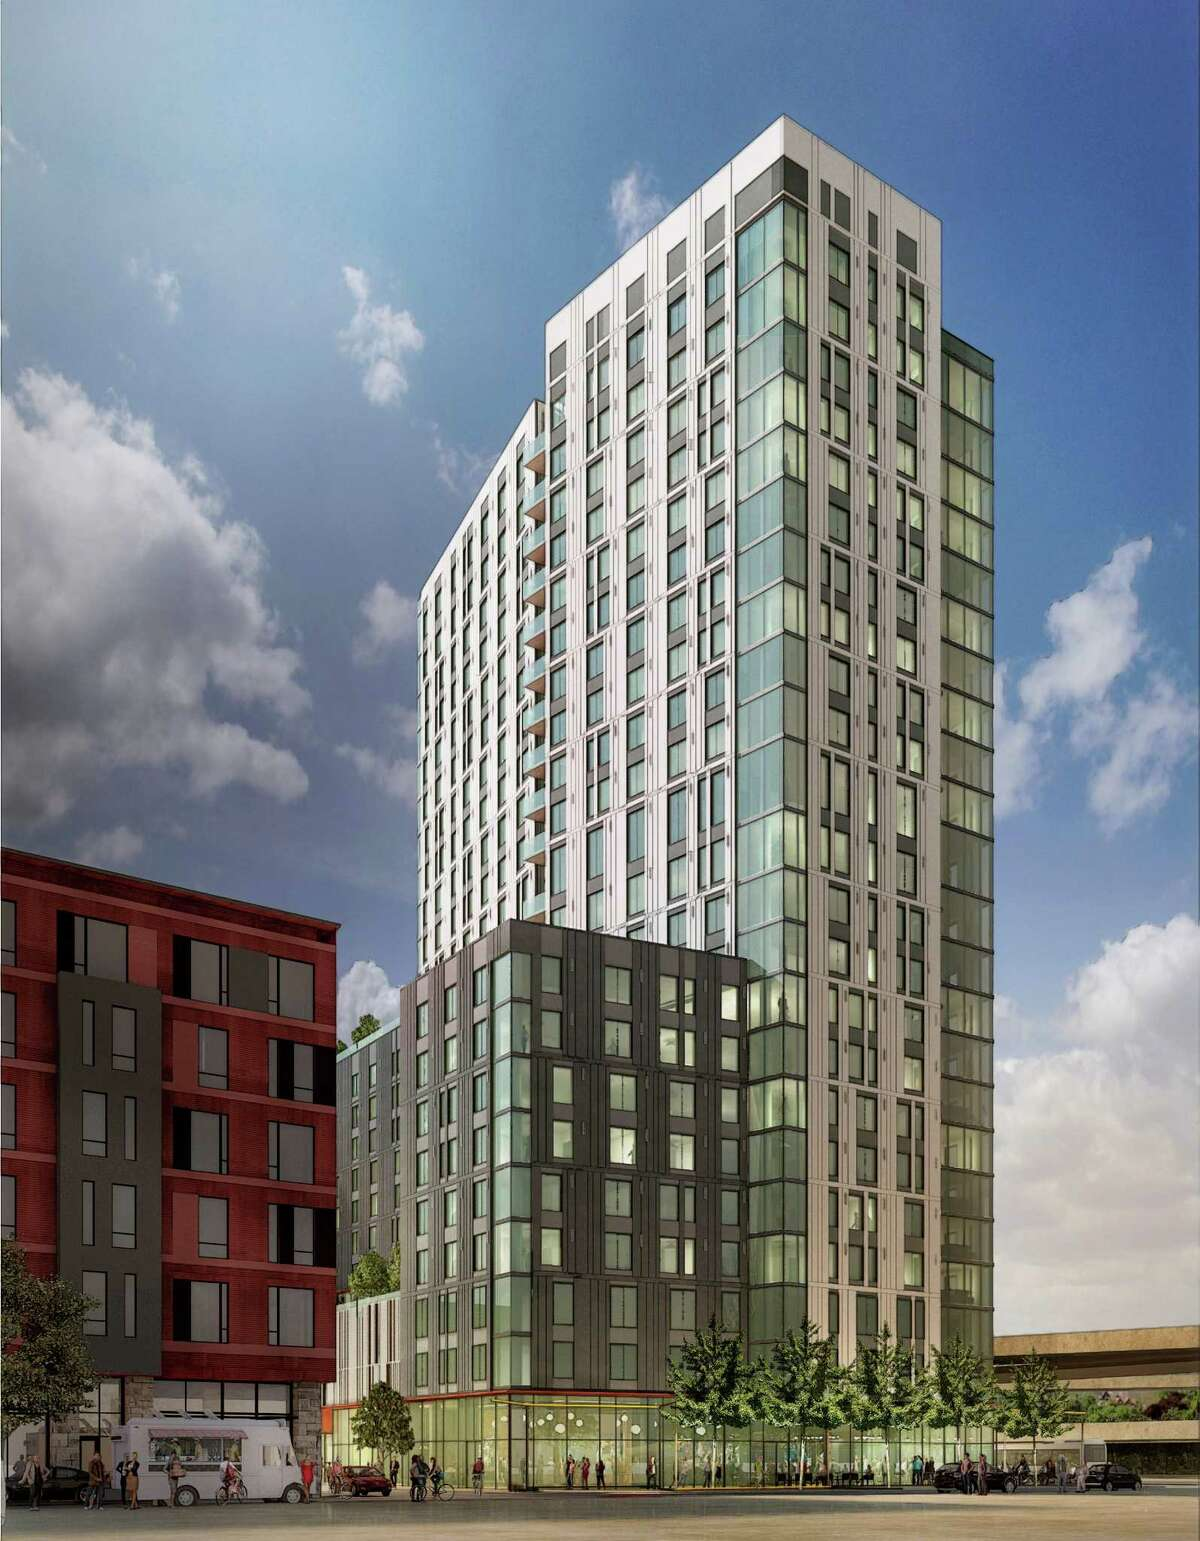 A rendering of the 24-story Skylyne housing project at the MacArthur Transit Village in Oakland